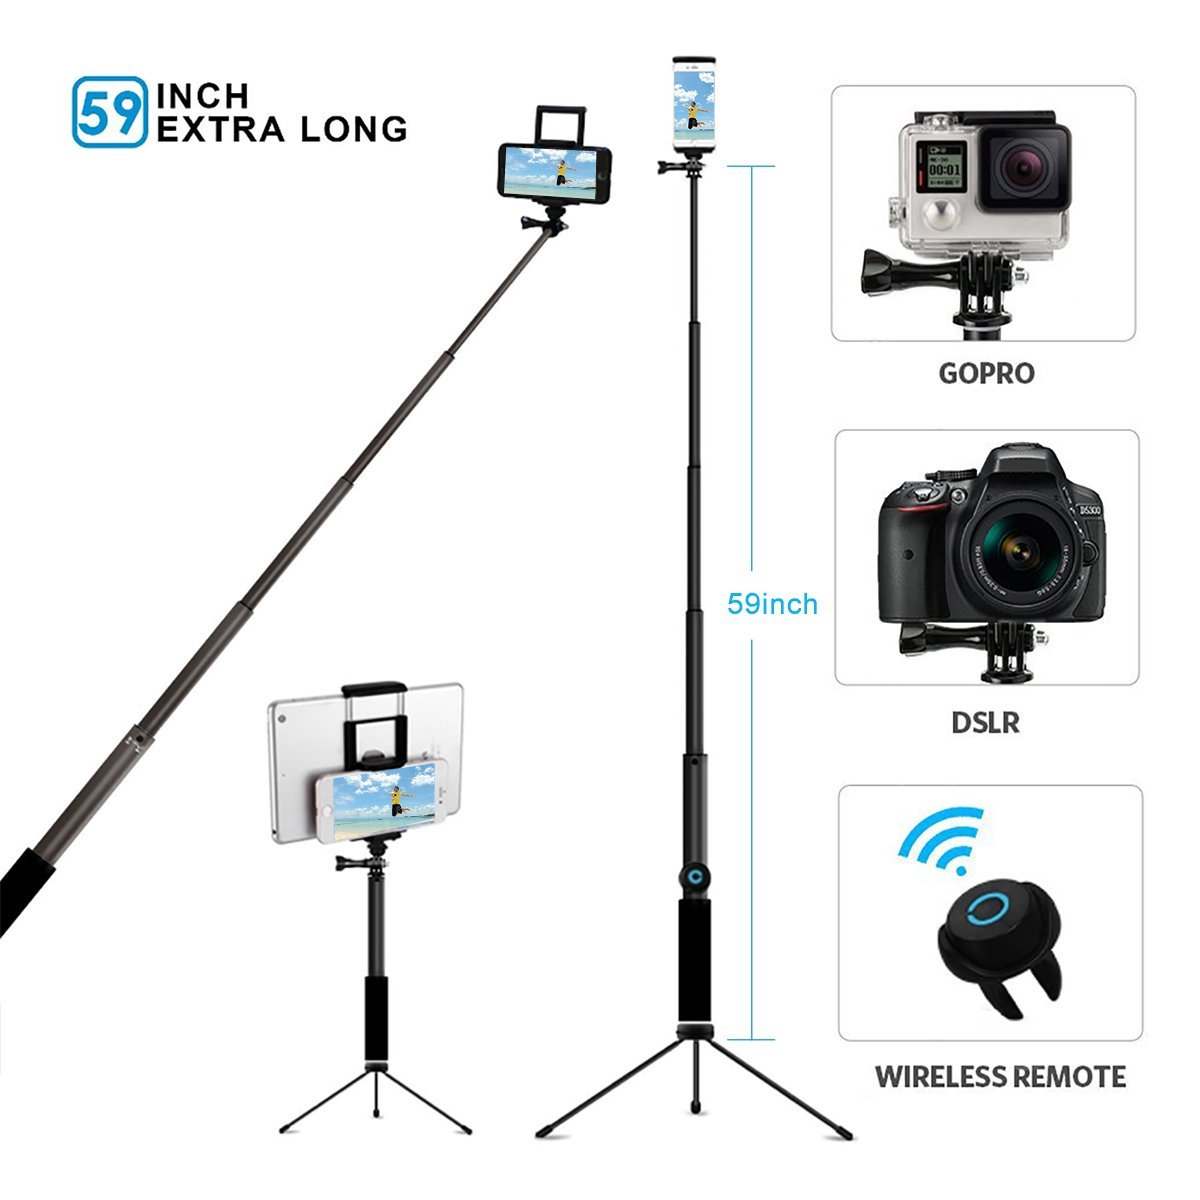 Selfie Stick Tripod with Remote,Hizek 59 Inch Extendable Monopod Shutter Remote 270°Rotation Phone Holder for iPhone X/8/7/6/5/Plus,Samsung S7/S8,Tablet,iPad,Android